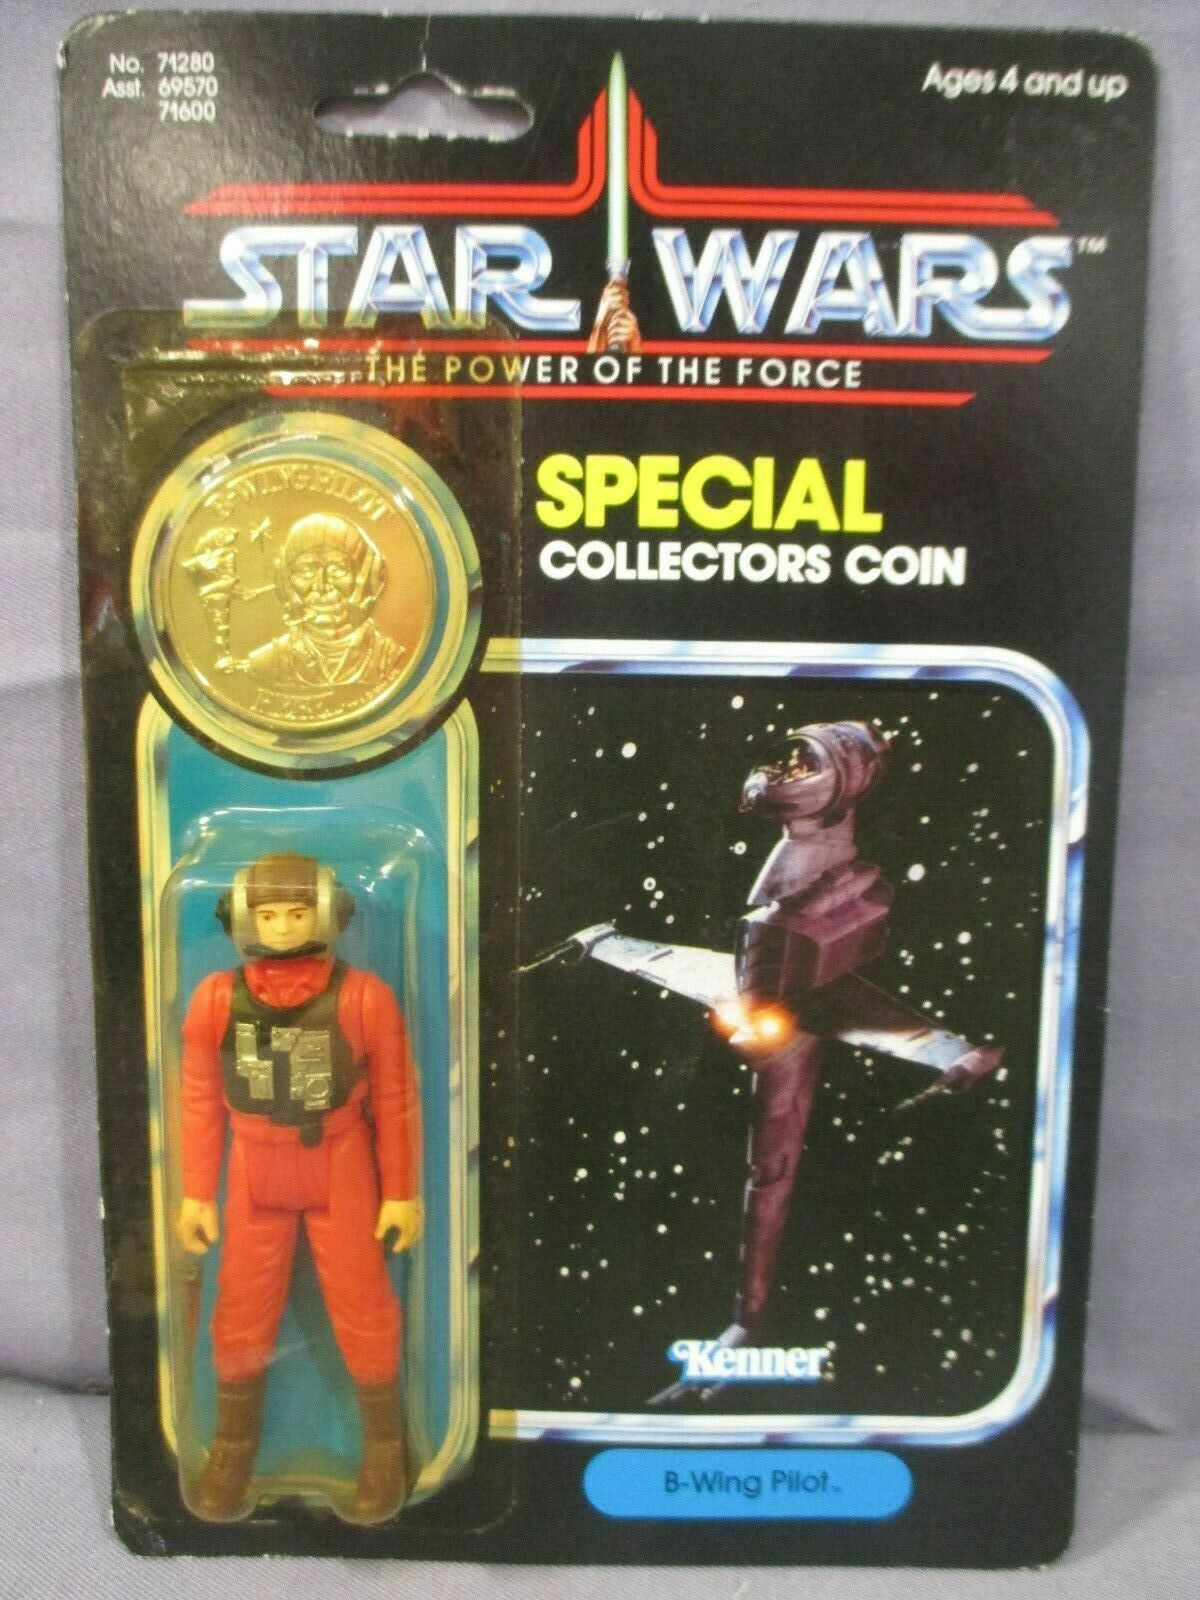 STAR WARS Vintage B-WING PILOT Power of the Force Factory Sealed POTF 1984